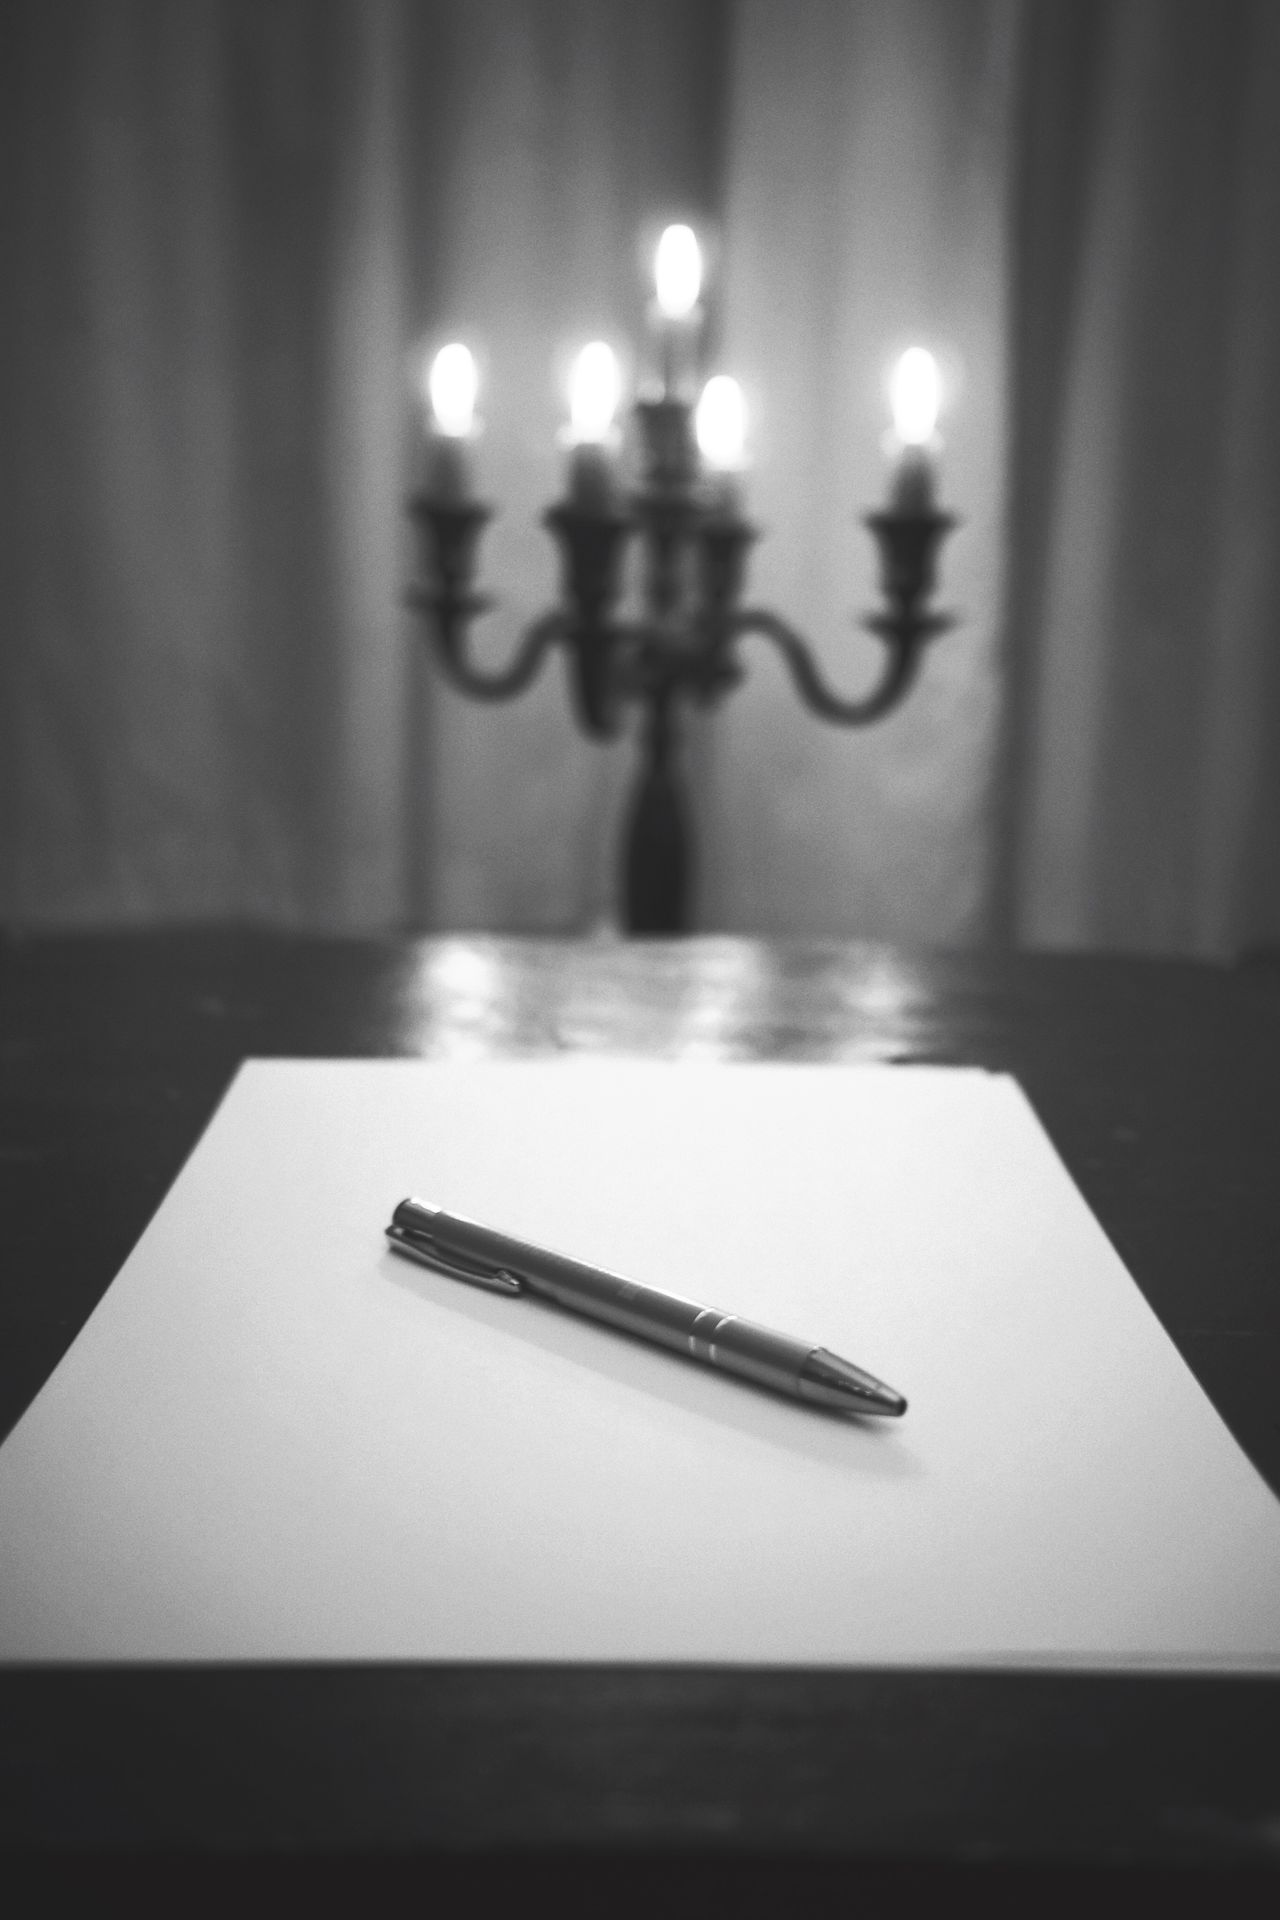 Indoors  Table Focus On Foreground Paper No People Close-up Illuminated Burning Day Writing Office Communication Night Thoughts Indoors  Candles